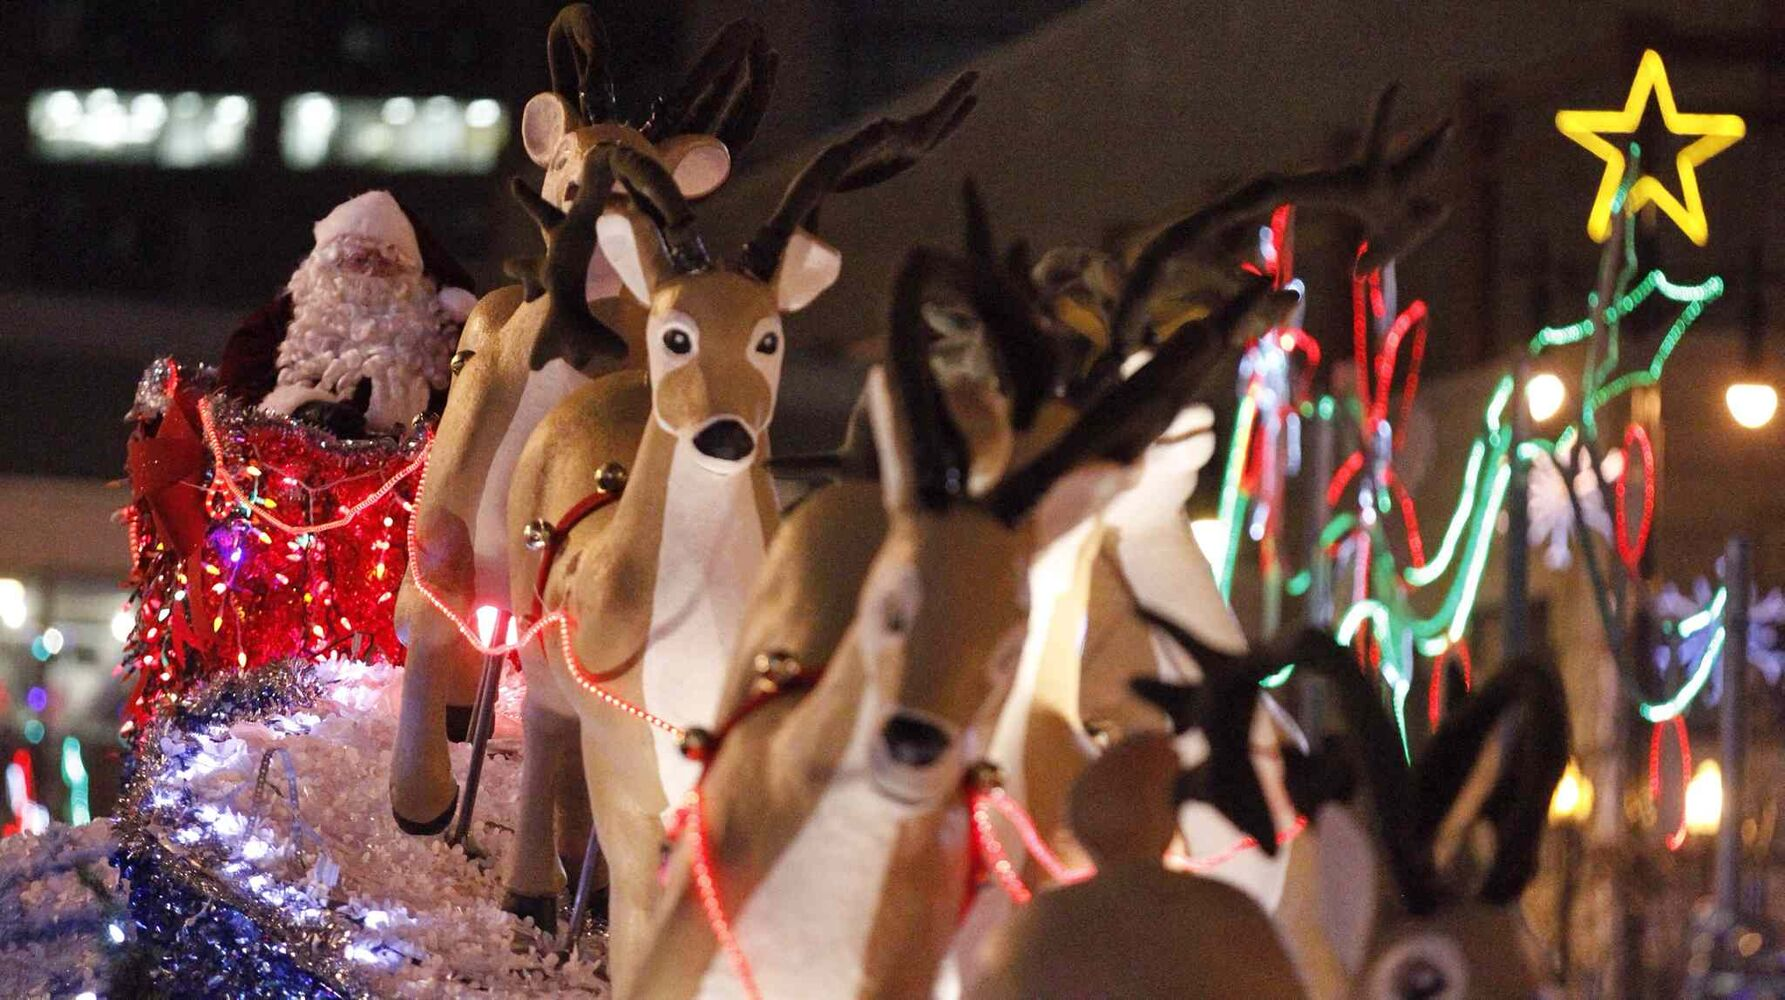 Santa and his reindeer were looking good at the parade. (TREVOR HAGAN / WINNIPEG FREE PRESS)